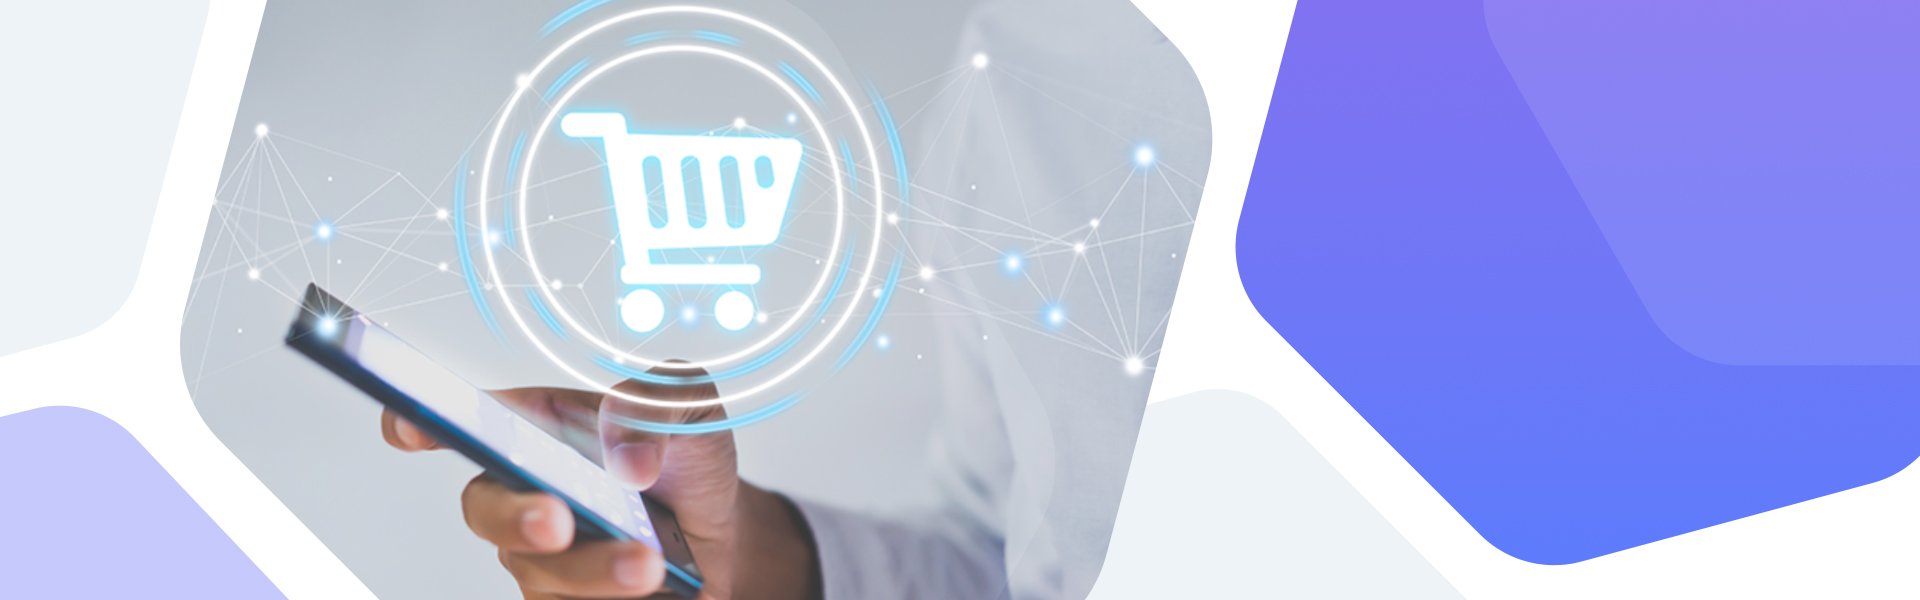 eCommerce-trends_main-banner